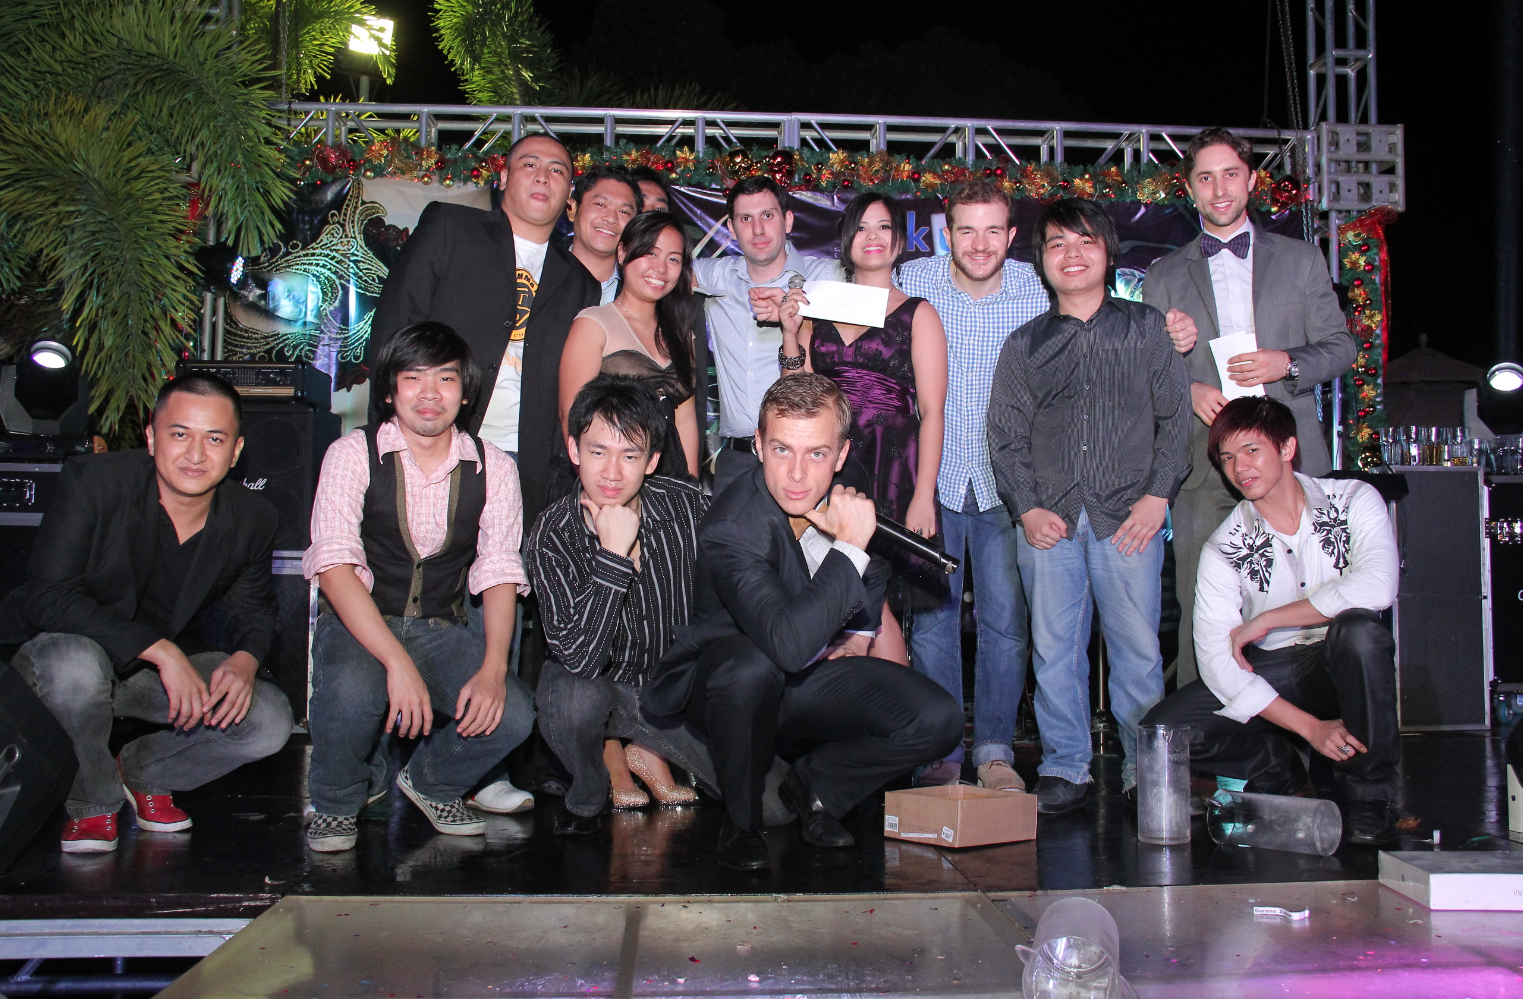 Part of the TaskUs Philippines team at the holiday party. Co-ounder Maddock in the front row, one to the left.